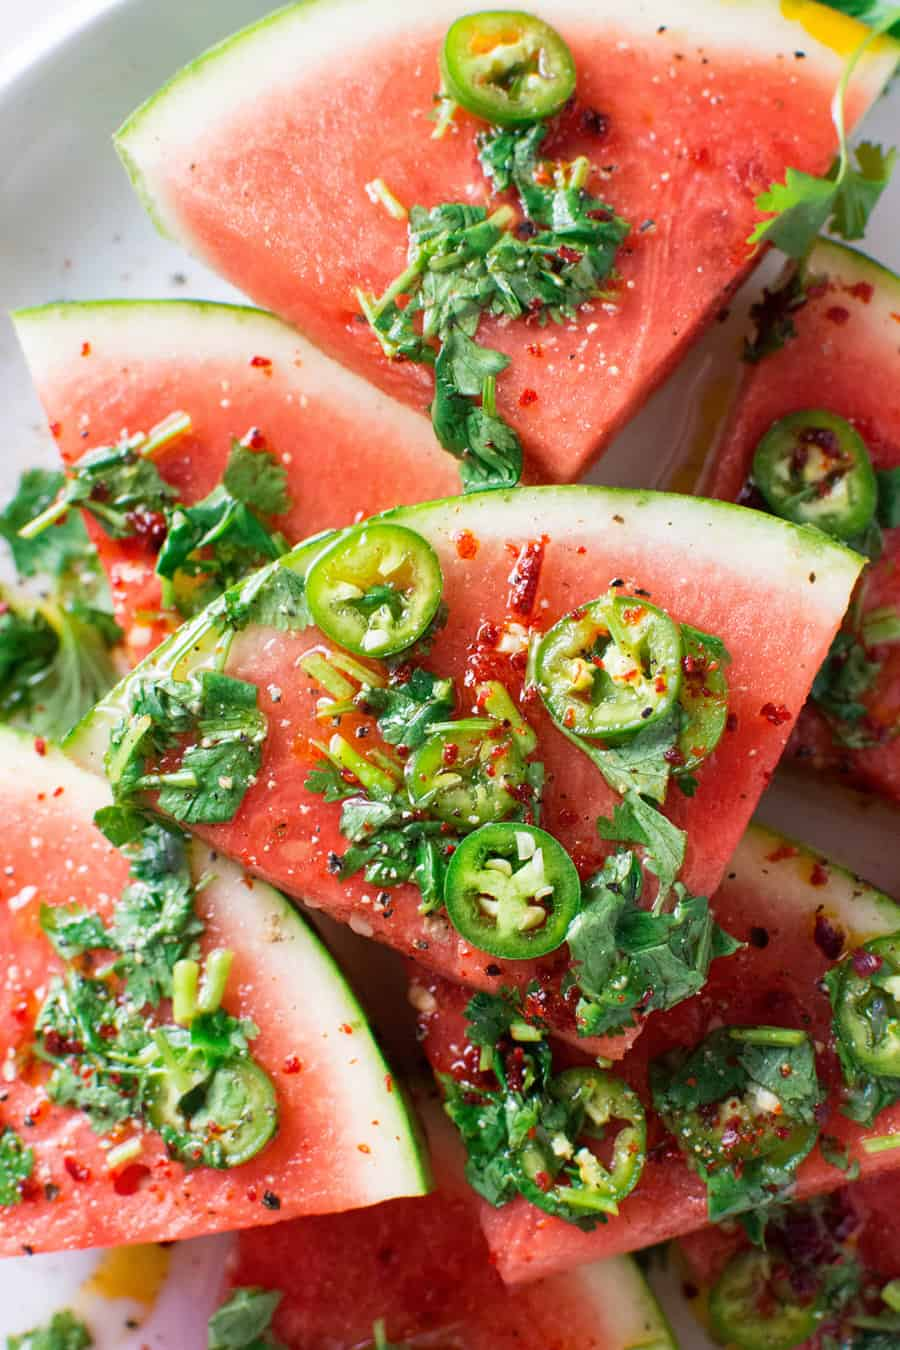 Slices of watermelon with jalapeño and cilantro.